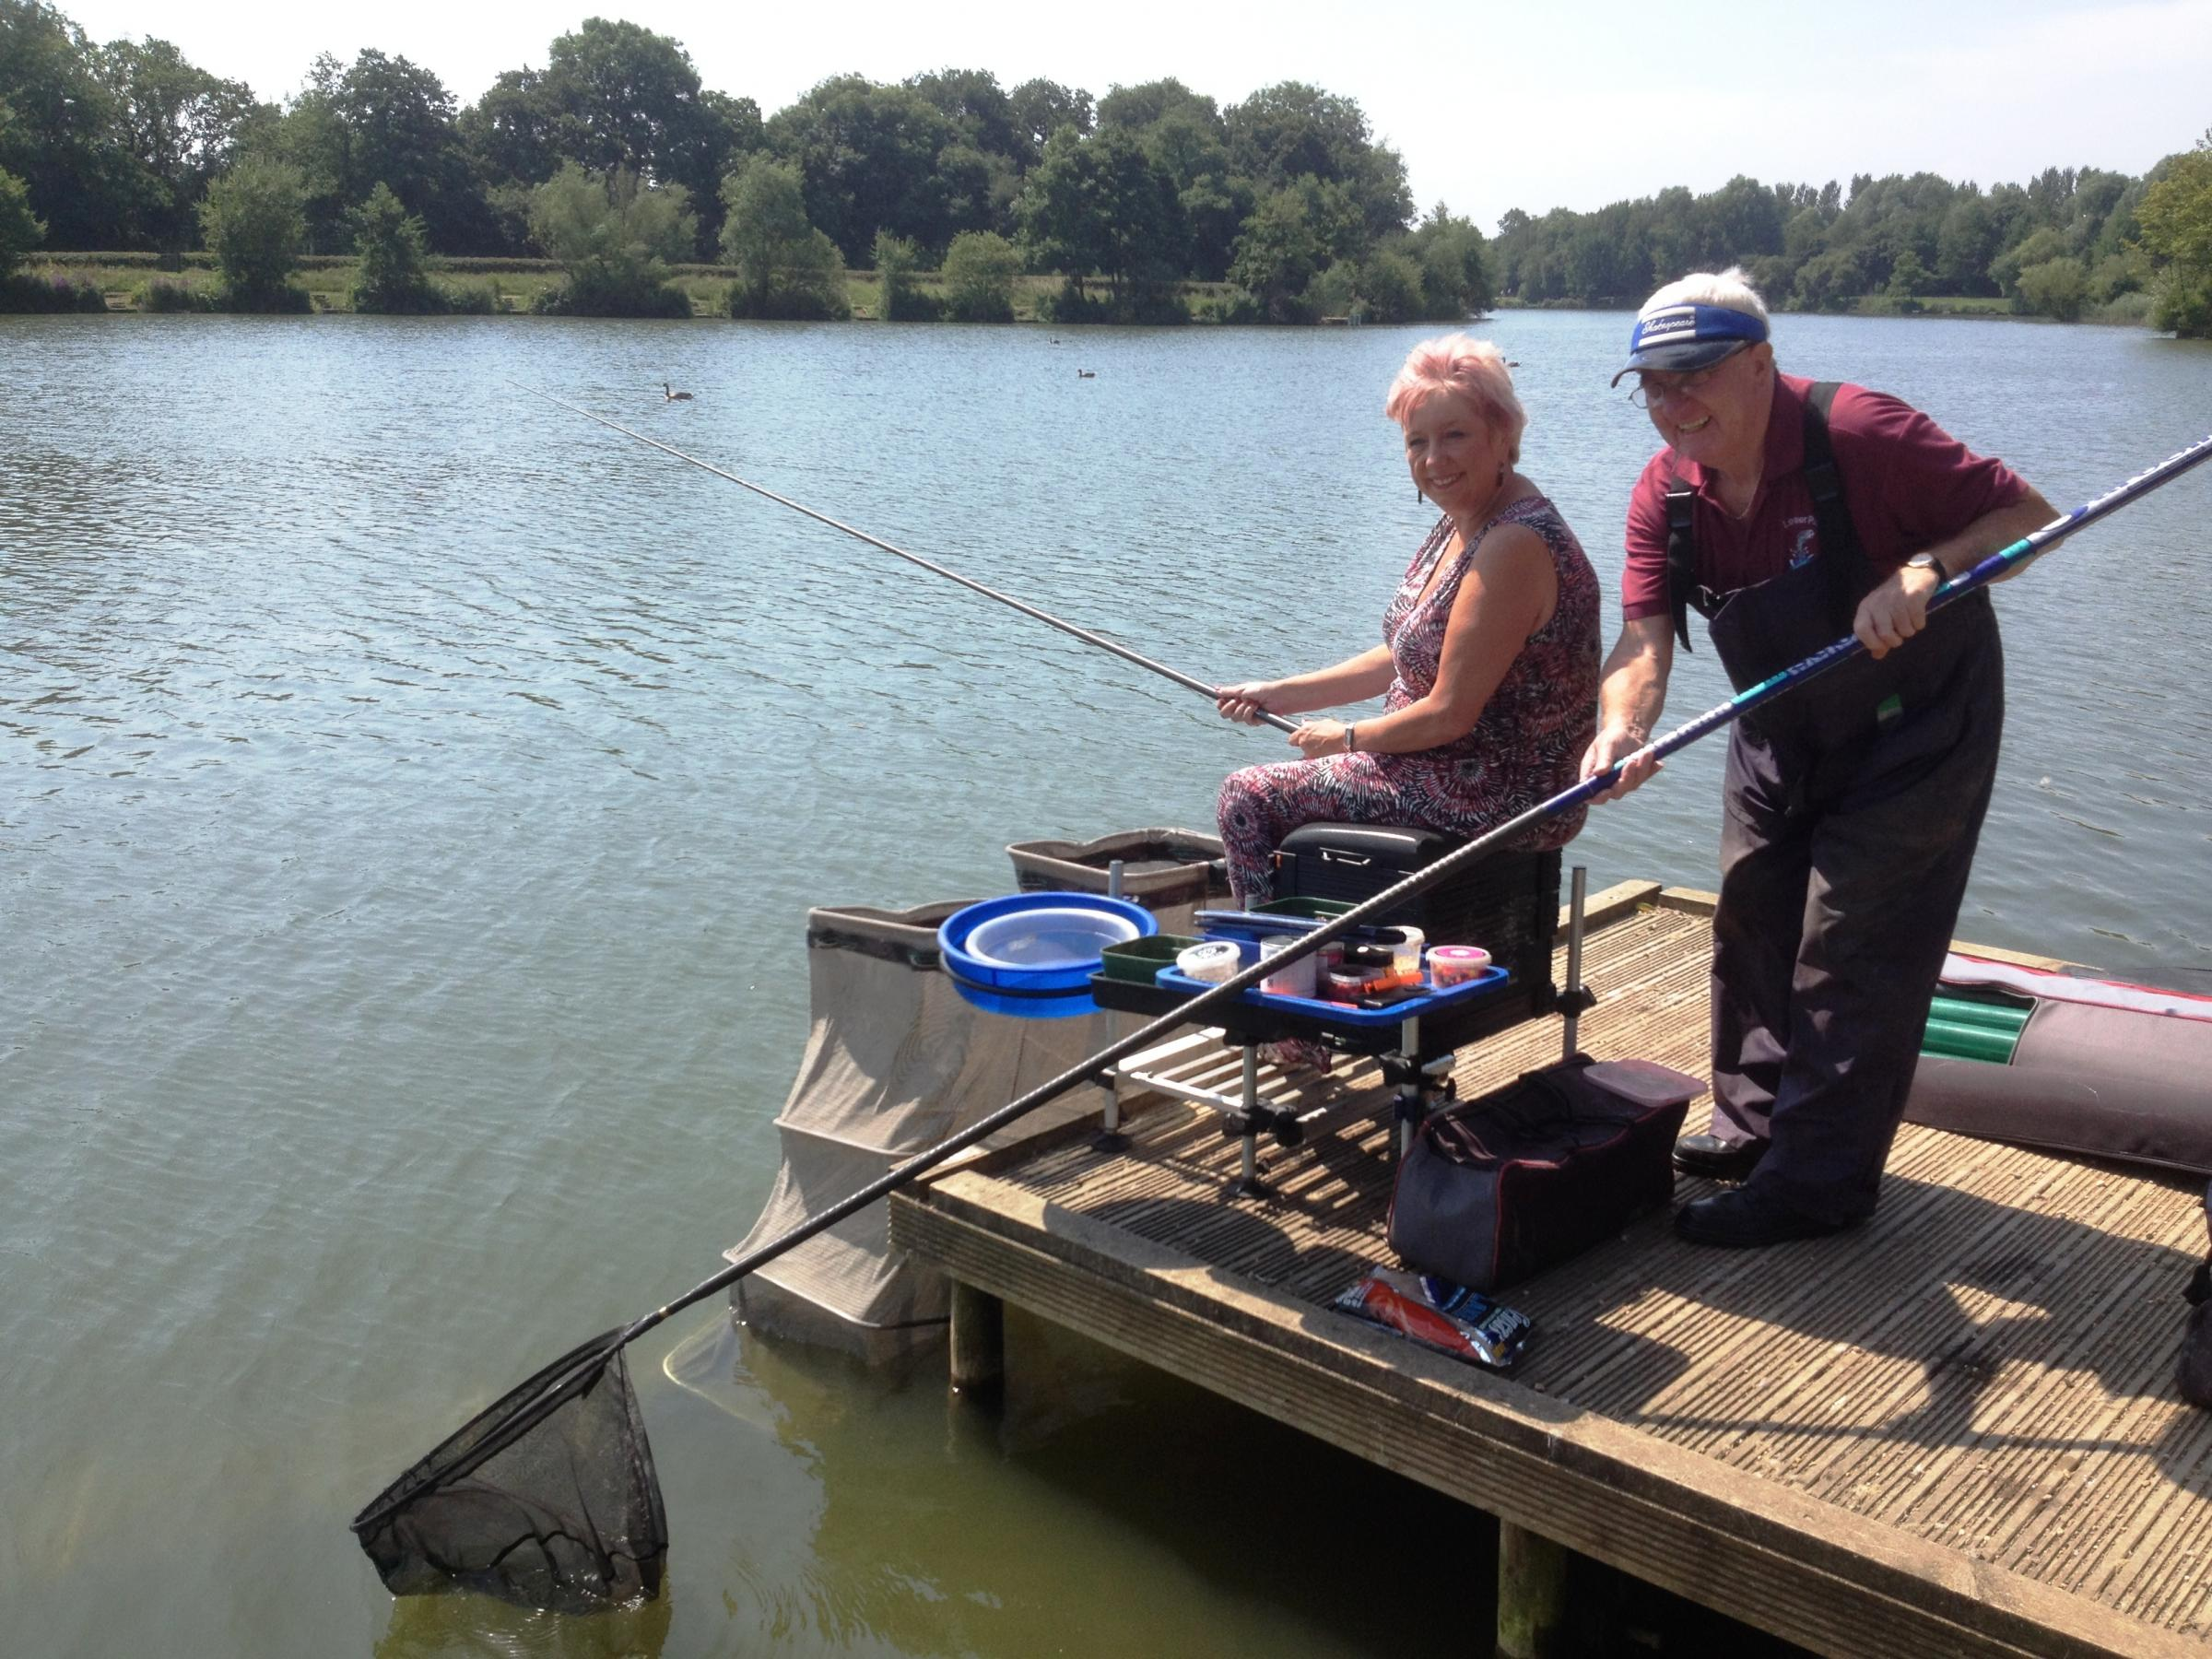 Karen Lumley MP and Astwood Bank Angling Club member J